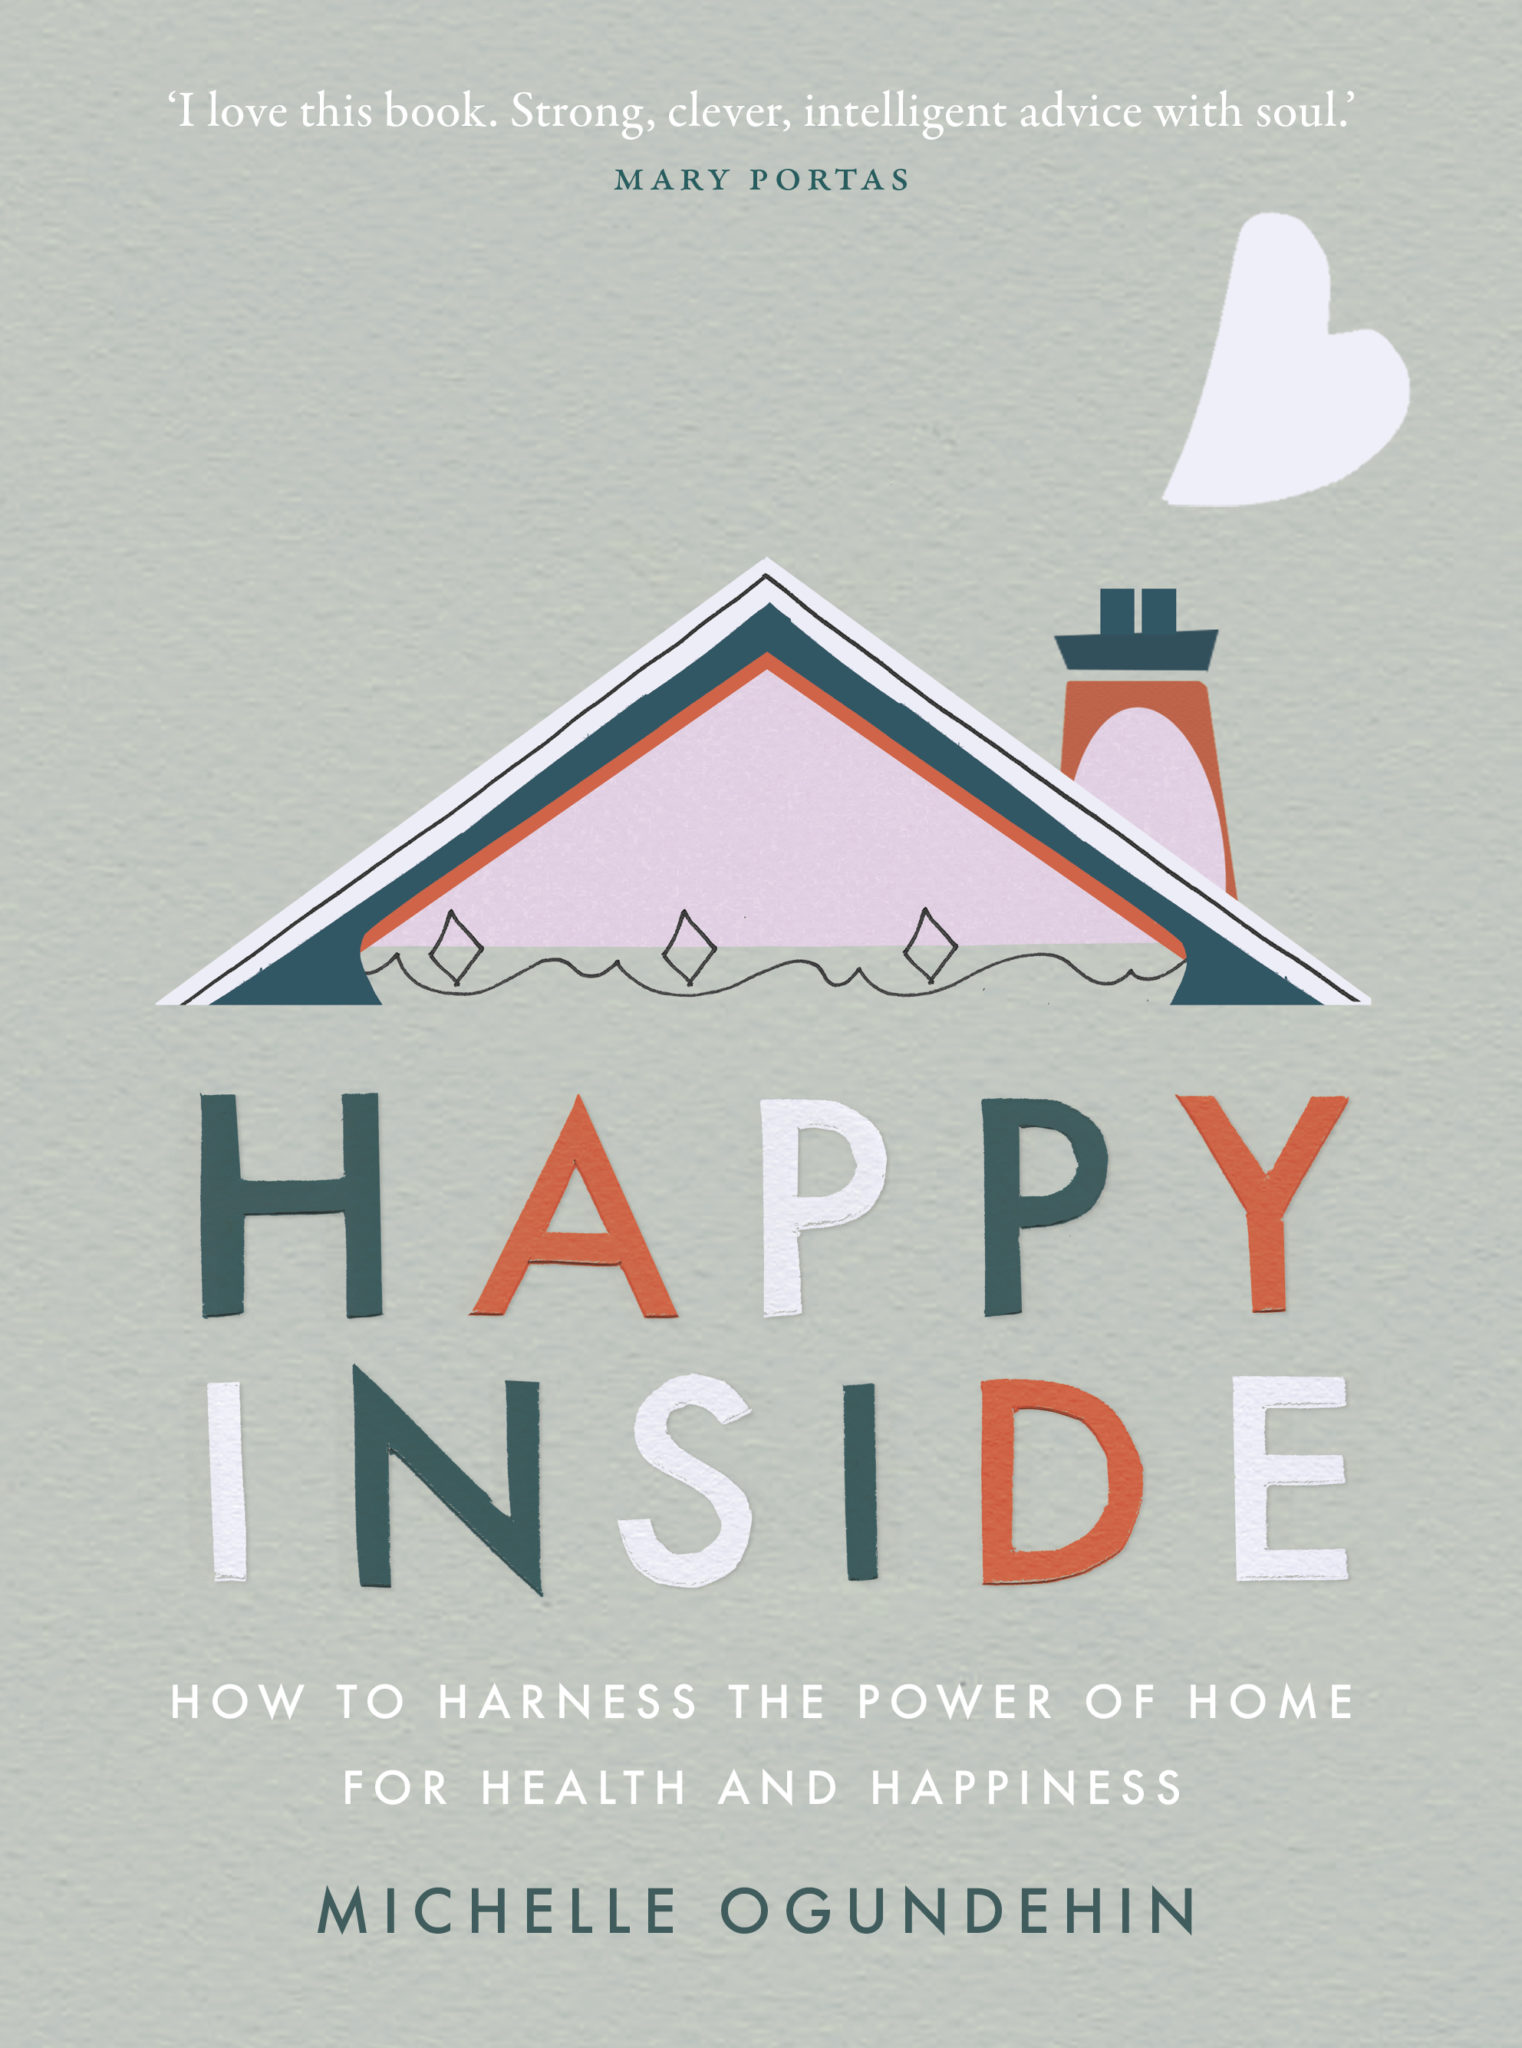 HappyInside: How to harness the power of home for health and happiness. Published 30 April 2020. Ebury Press.